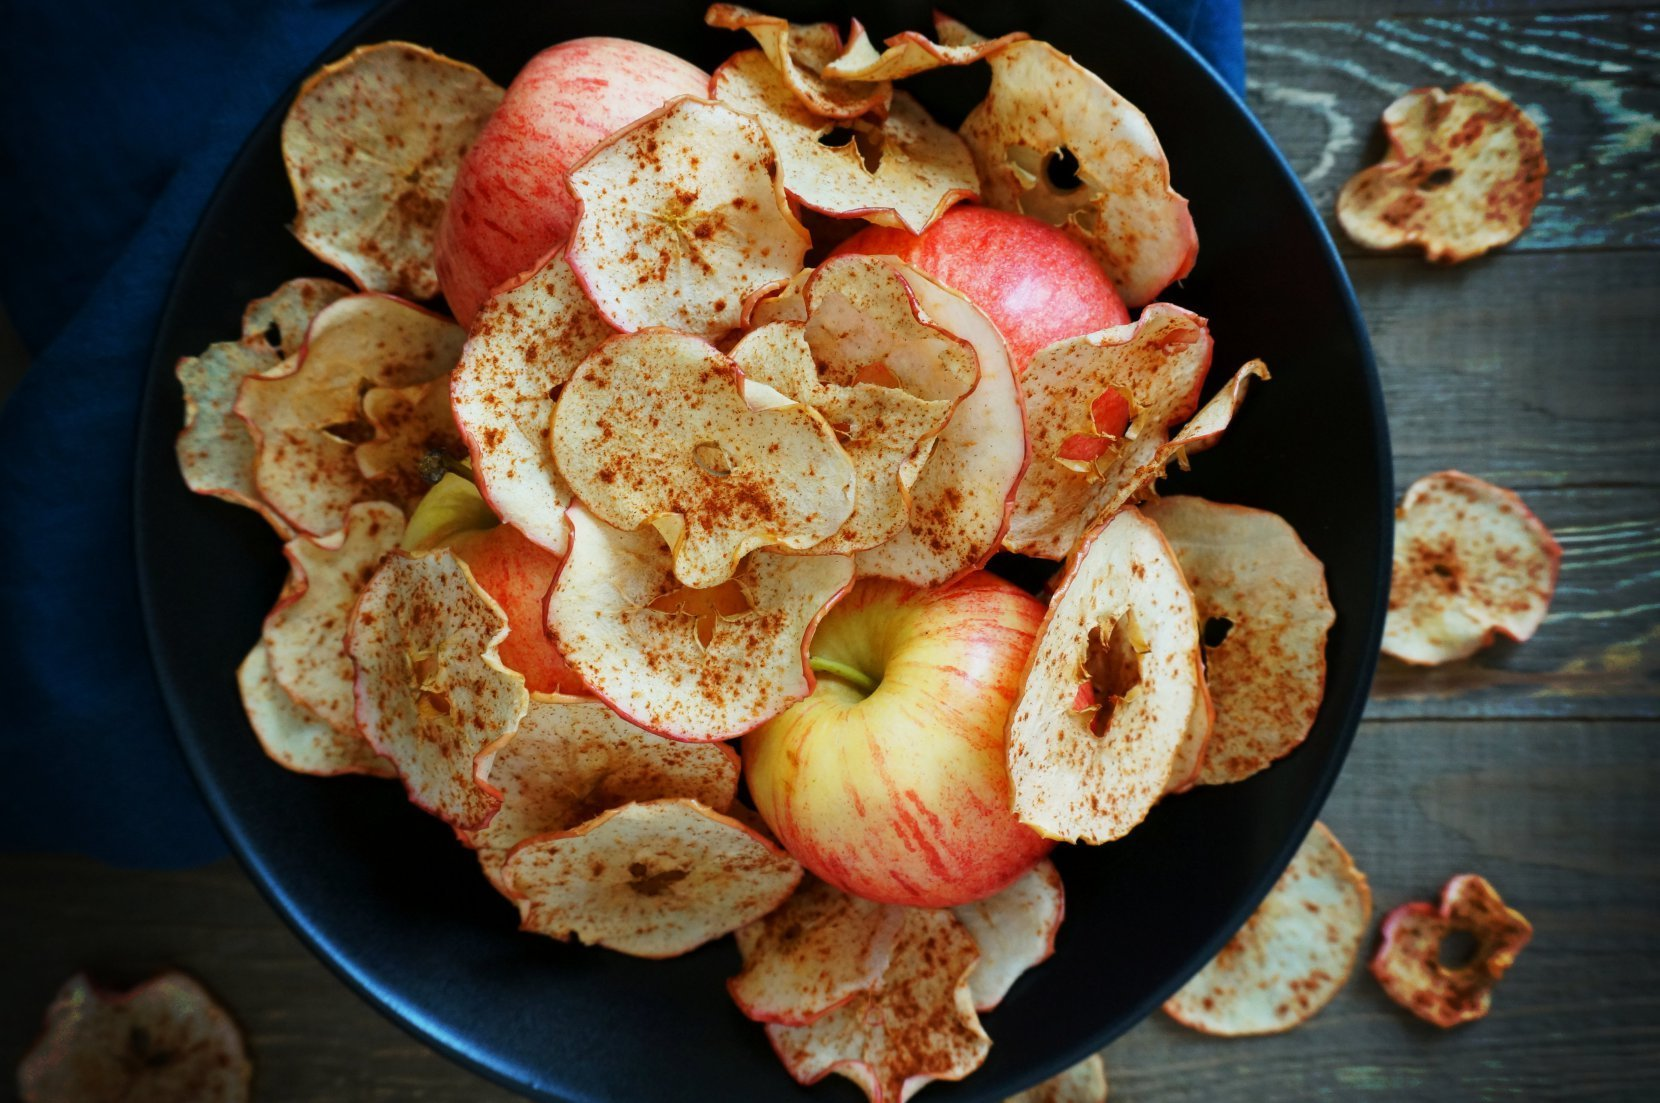 Sweet and salty cinnamon apple chips, featured in 65+ nutrient dense real food snack recipes.